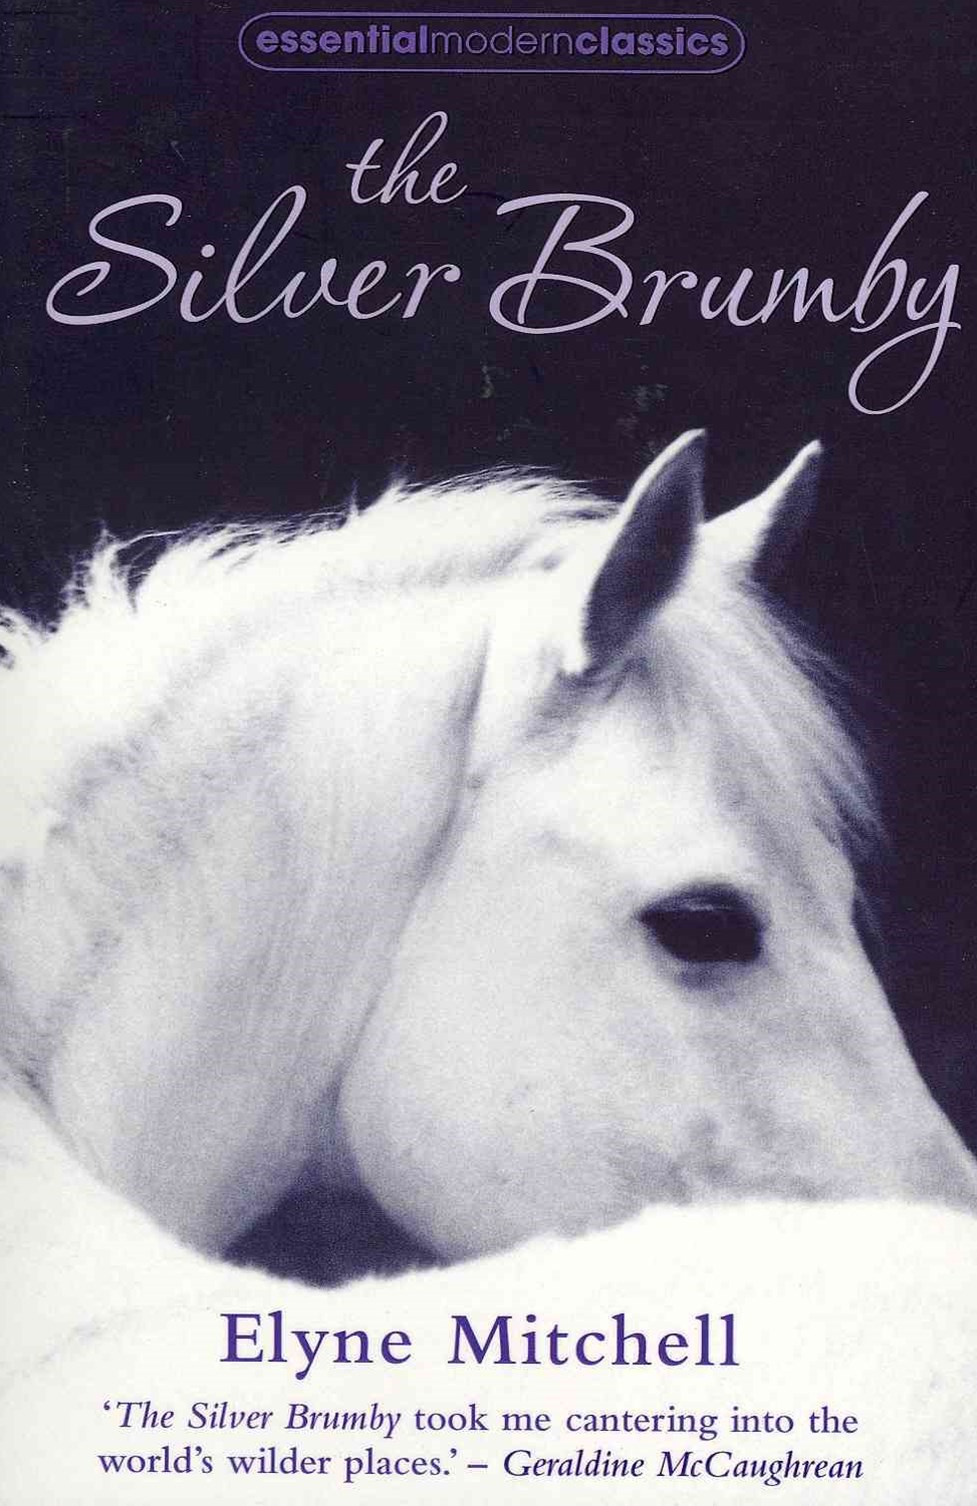 Collins Modern Classics: The Silver Brumby